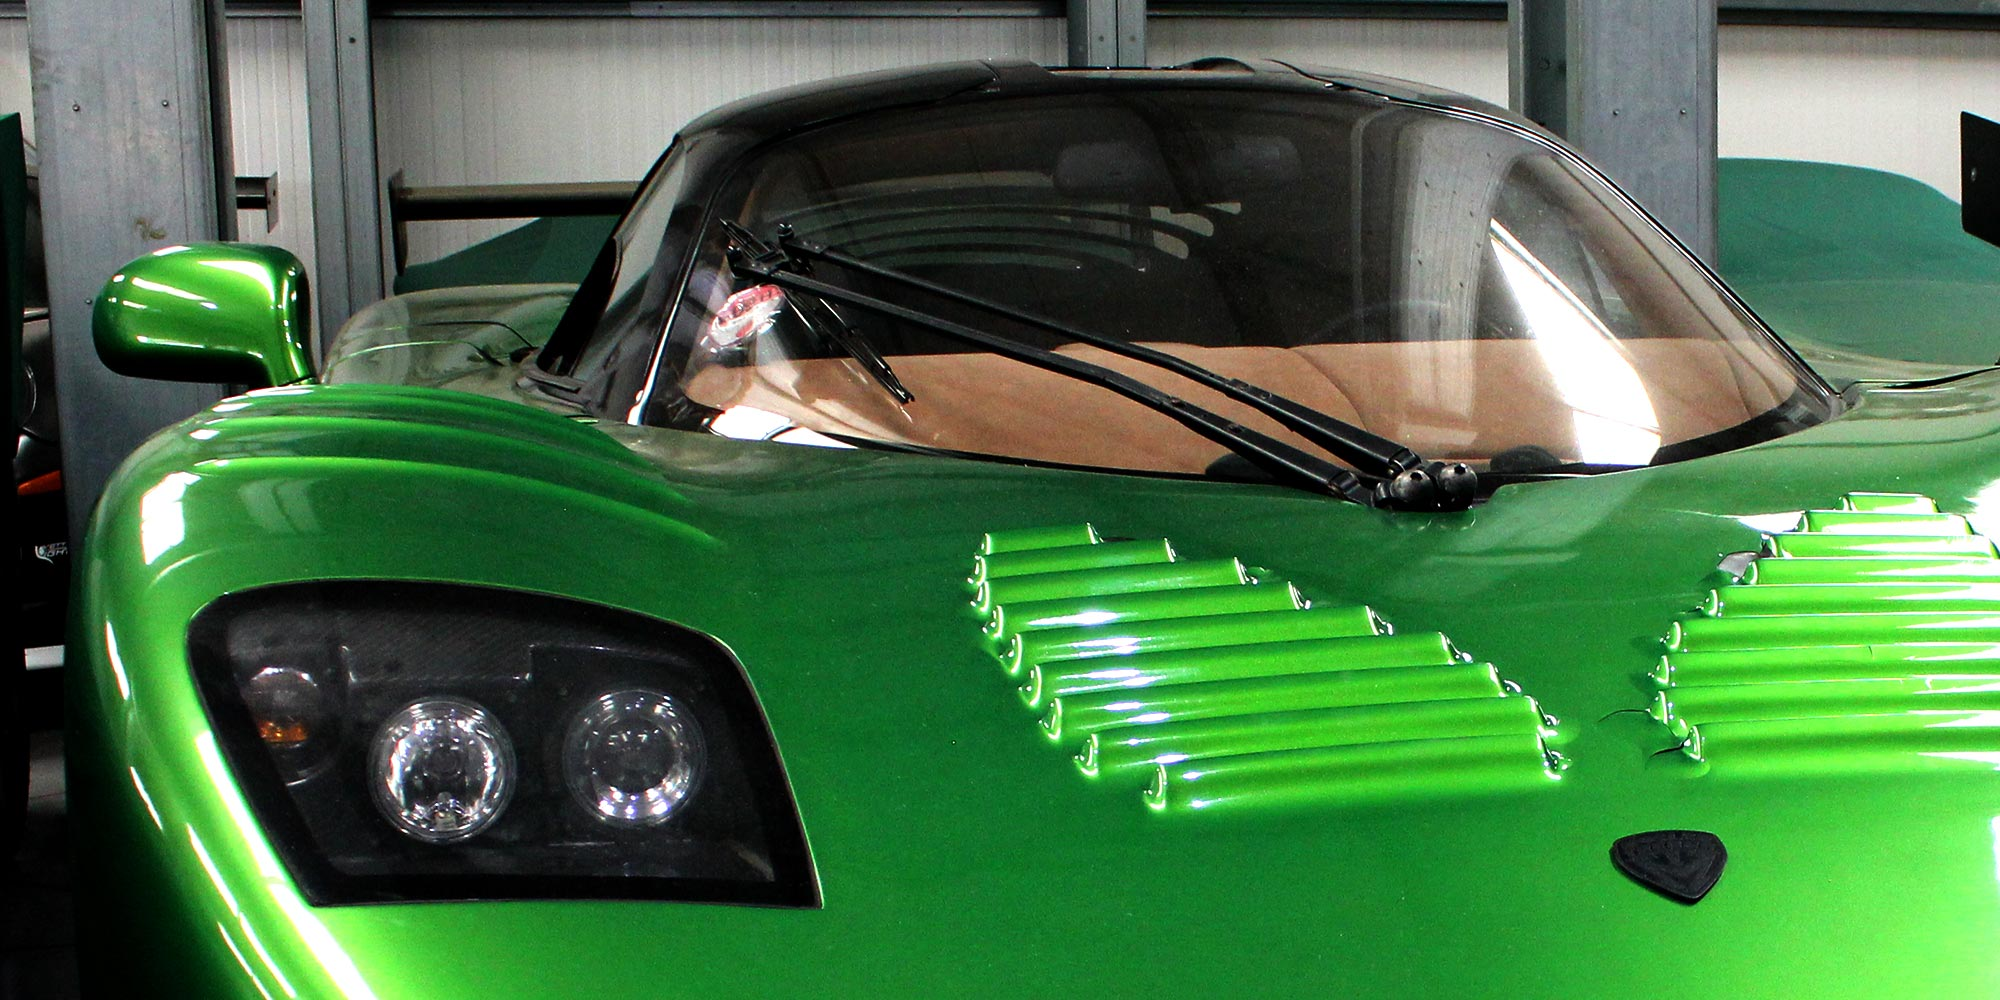 metallic green mosler mt900 at topcats racing workshop